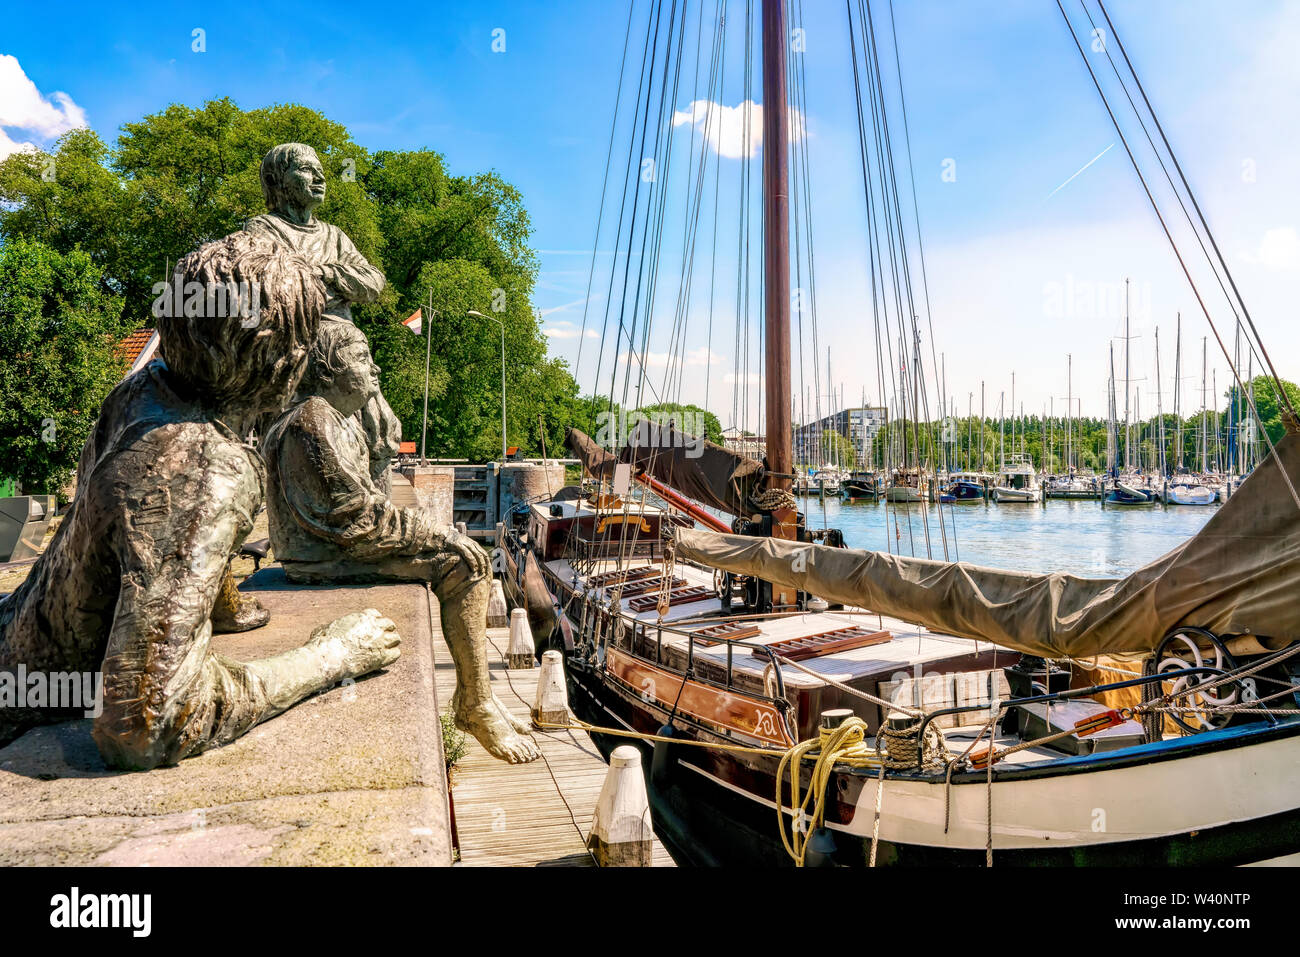 Hoorn, Netherlands, 06/22/2019: The three cabin boys of Captain Bontekoe in the port of Hoorn in the Netherlands. - Stock Image